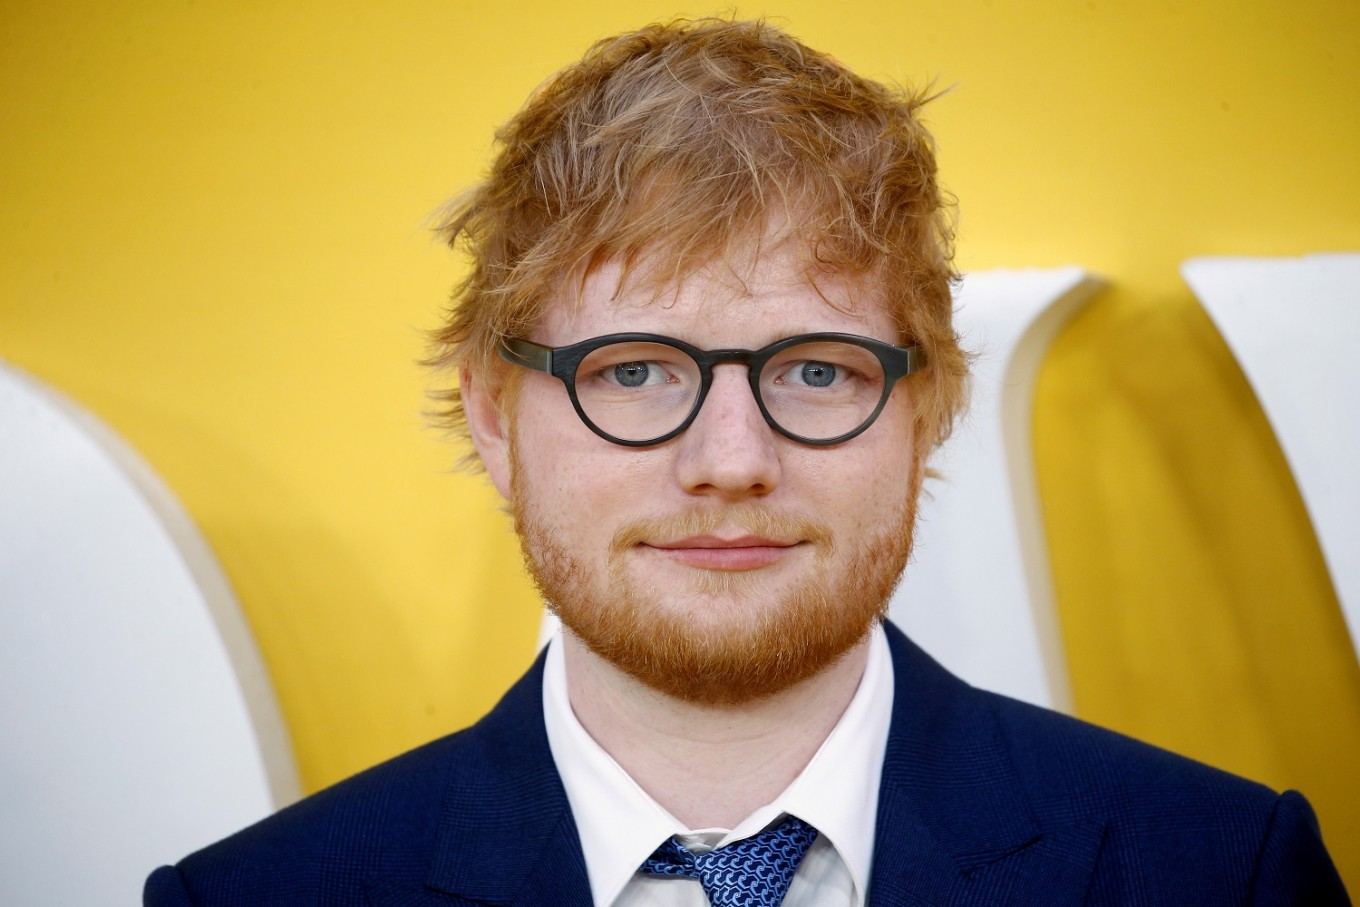 Ed Sheeran opens up about the pitfalls of fame